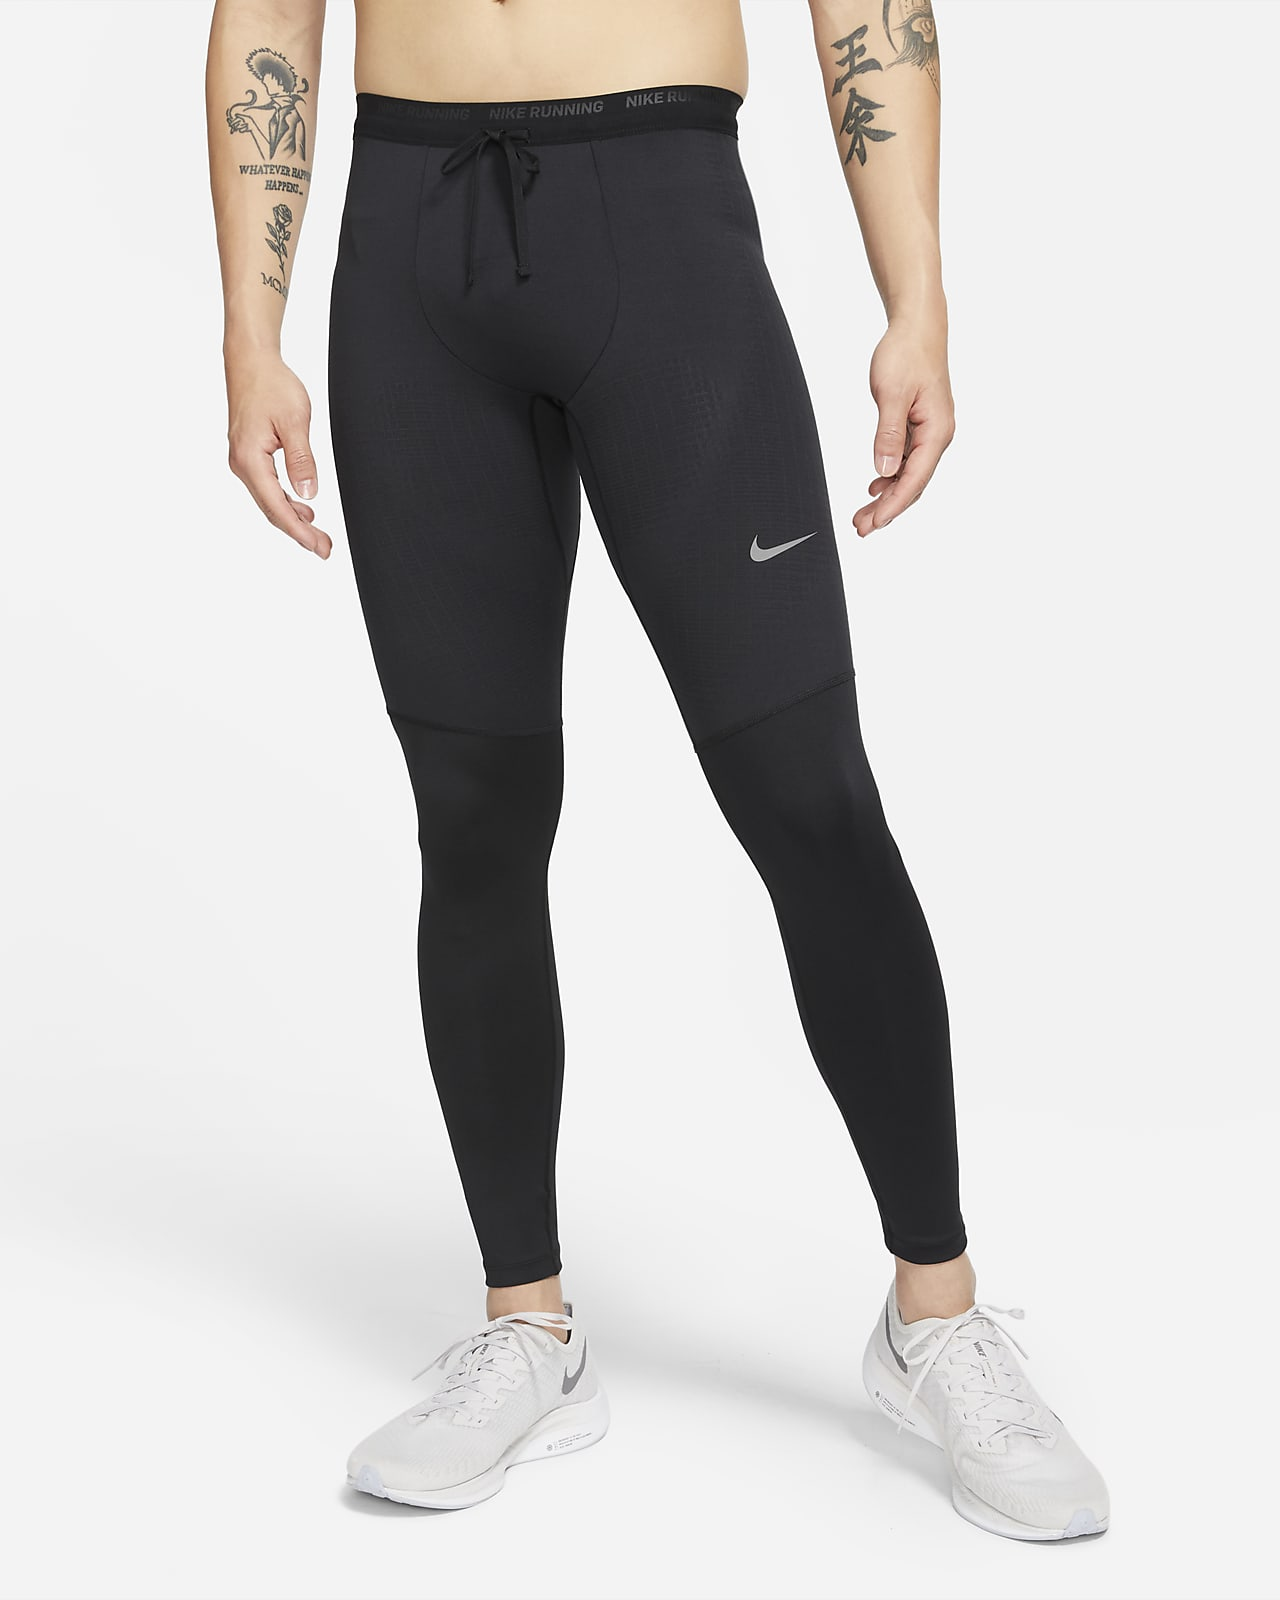 Nike Phenom Elite Men's Running Tights